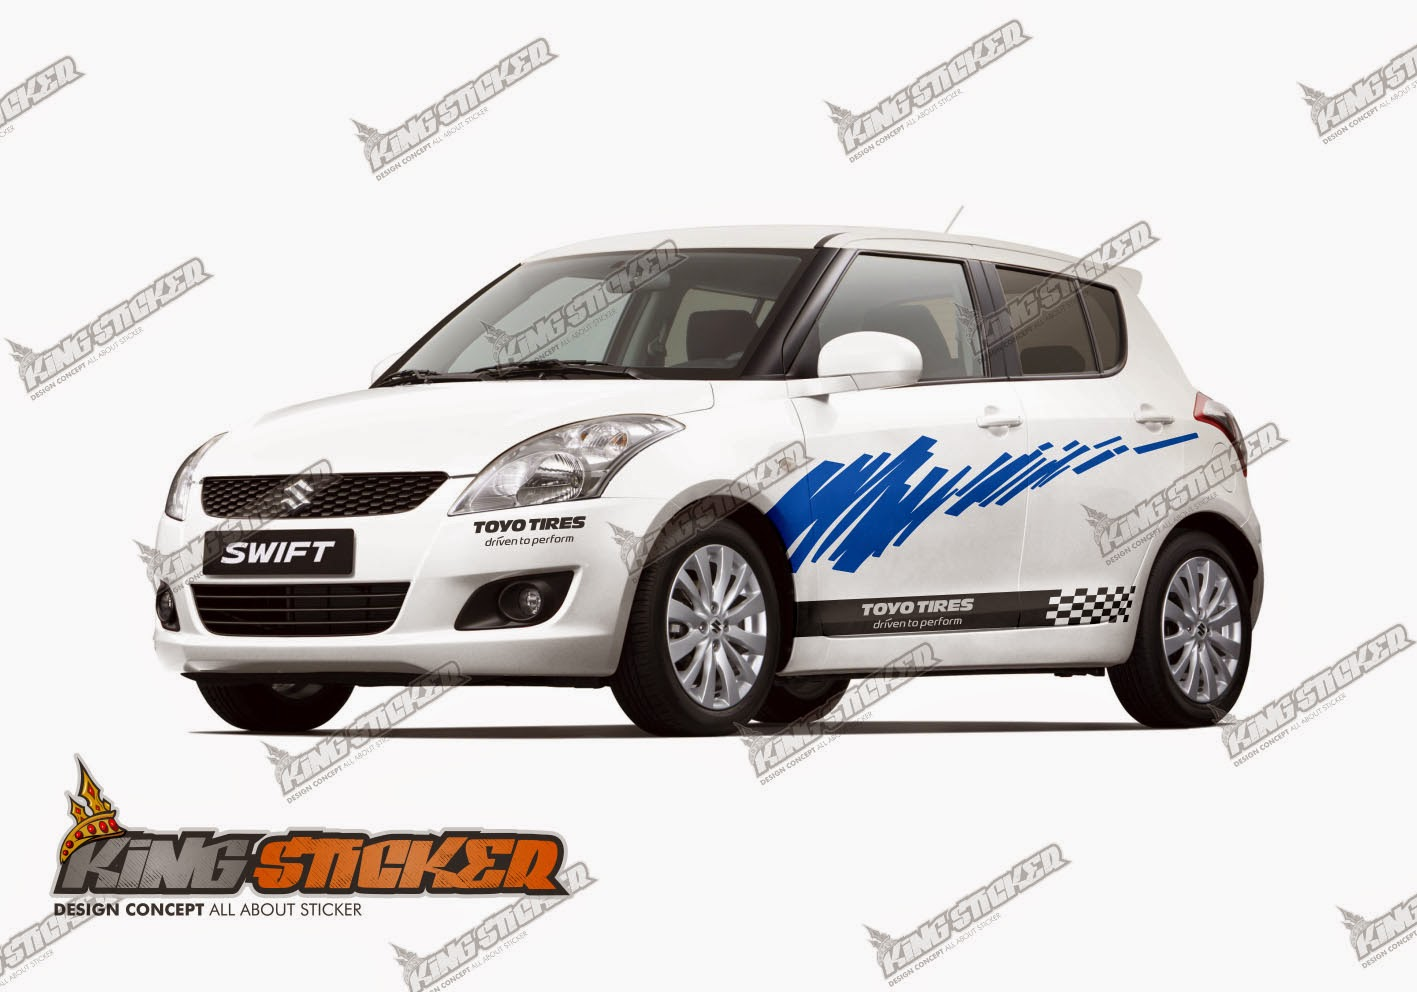 CUTTING STICKER SUZUKI SWIFT | King Sticker bali